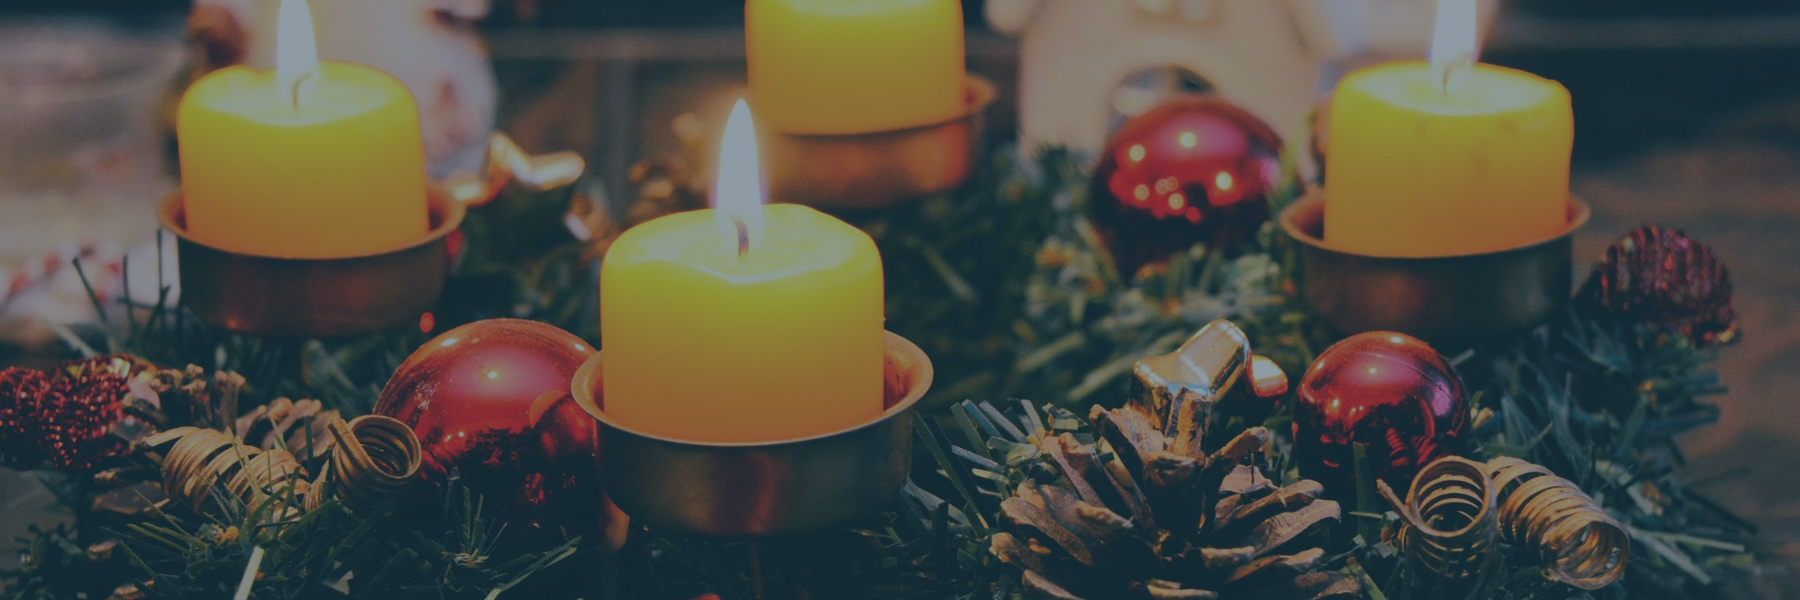 Helpful Tips for Candle Makers This Holiday Season